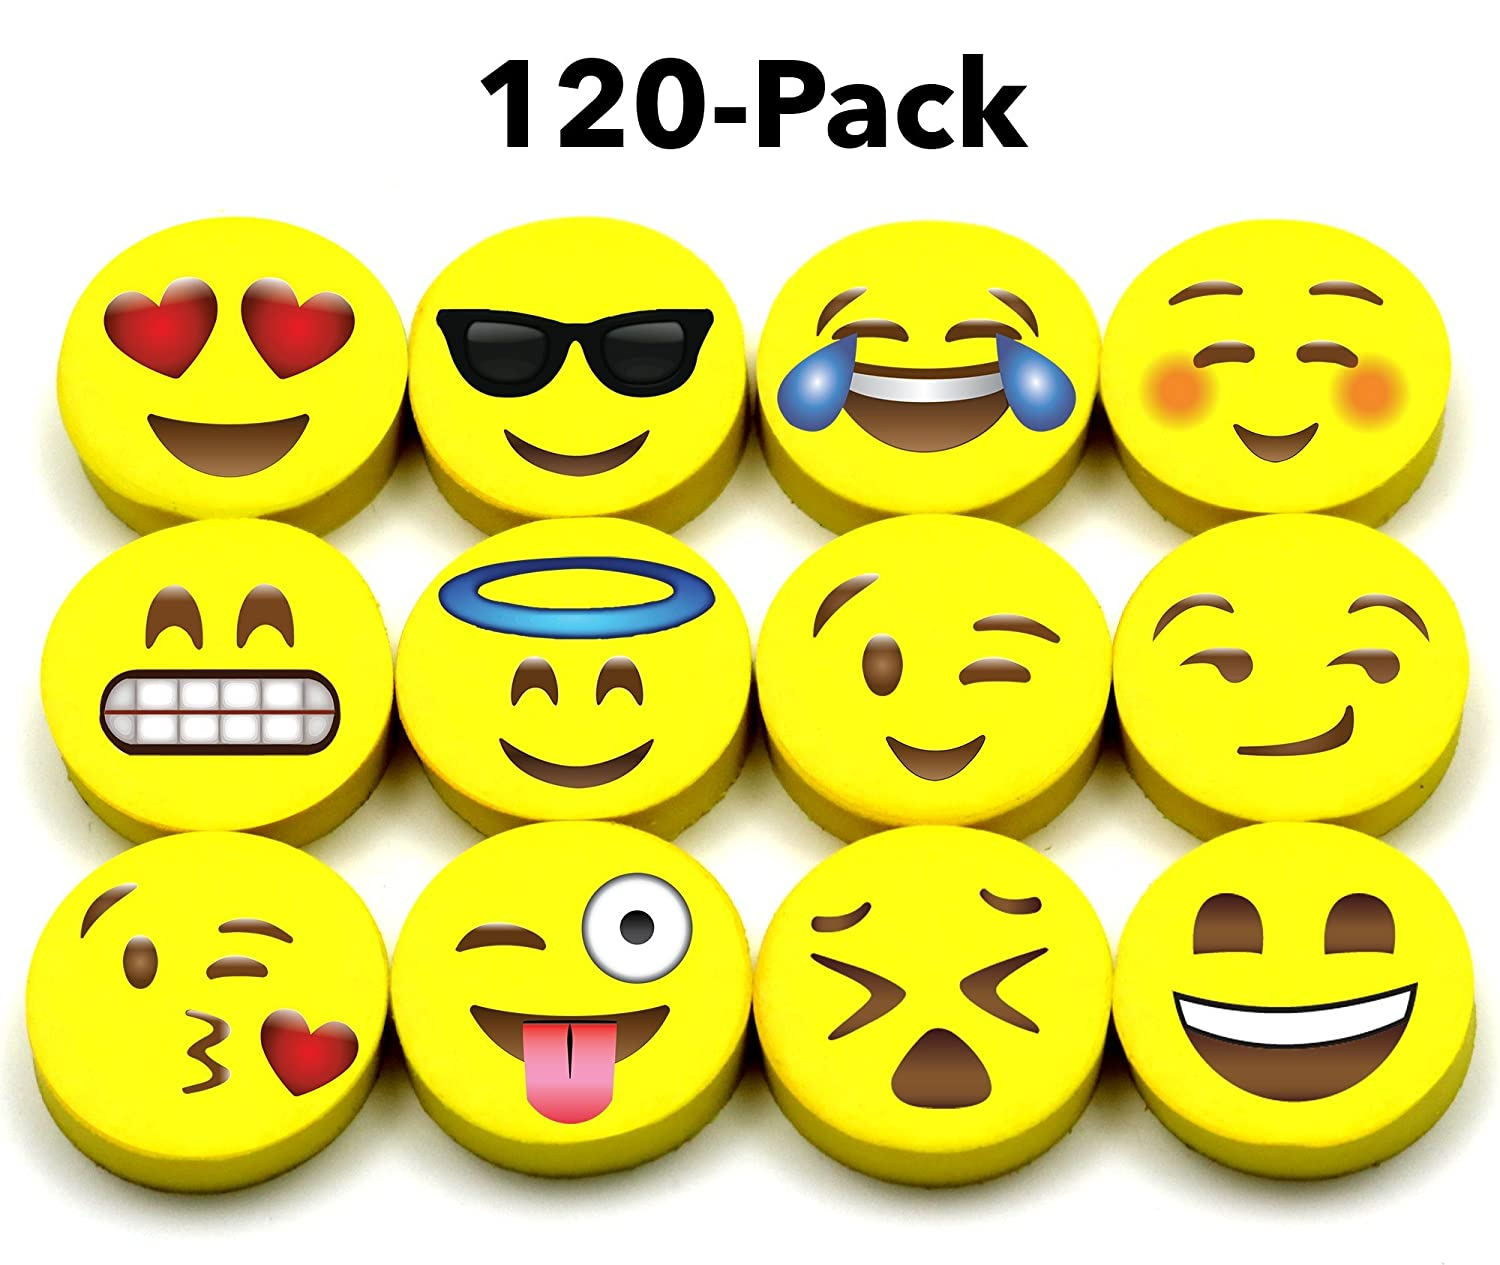 Emoji Pencil Erasers (120-Pack), Super Cute, Fun and Functional, Great as Gifts for Kids, Incentives, Prizes, Party Favors, Classroom Rewards and School Supplies - Erase Very Well, Child-Safe BPA Free